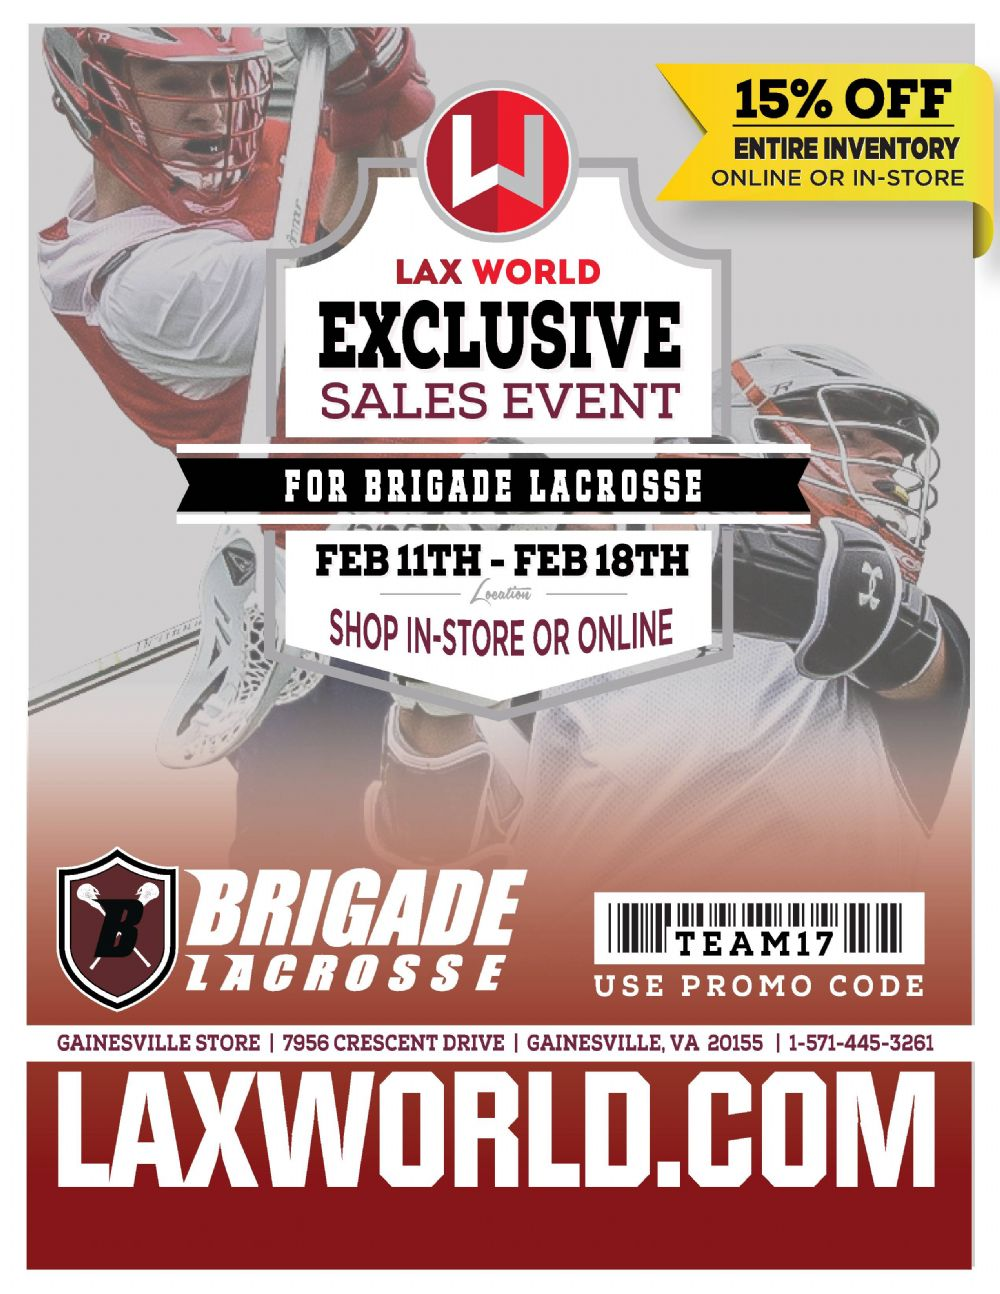 Get 14 Lax World coupon codes and promo codes at CouponBirds. Click to enjoy the latest deals and coupons of Lax World and save up to 40% when making purchase at checkout. Shop toybook9uf.ga and enjoy your savings of November, now!